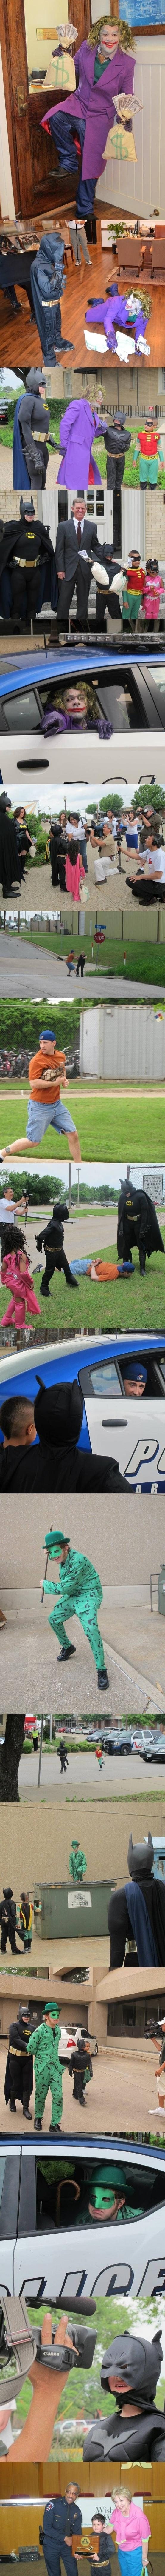 25 Pictures That Show That Good Cops Actually Do Exist